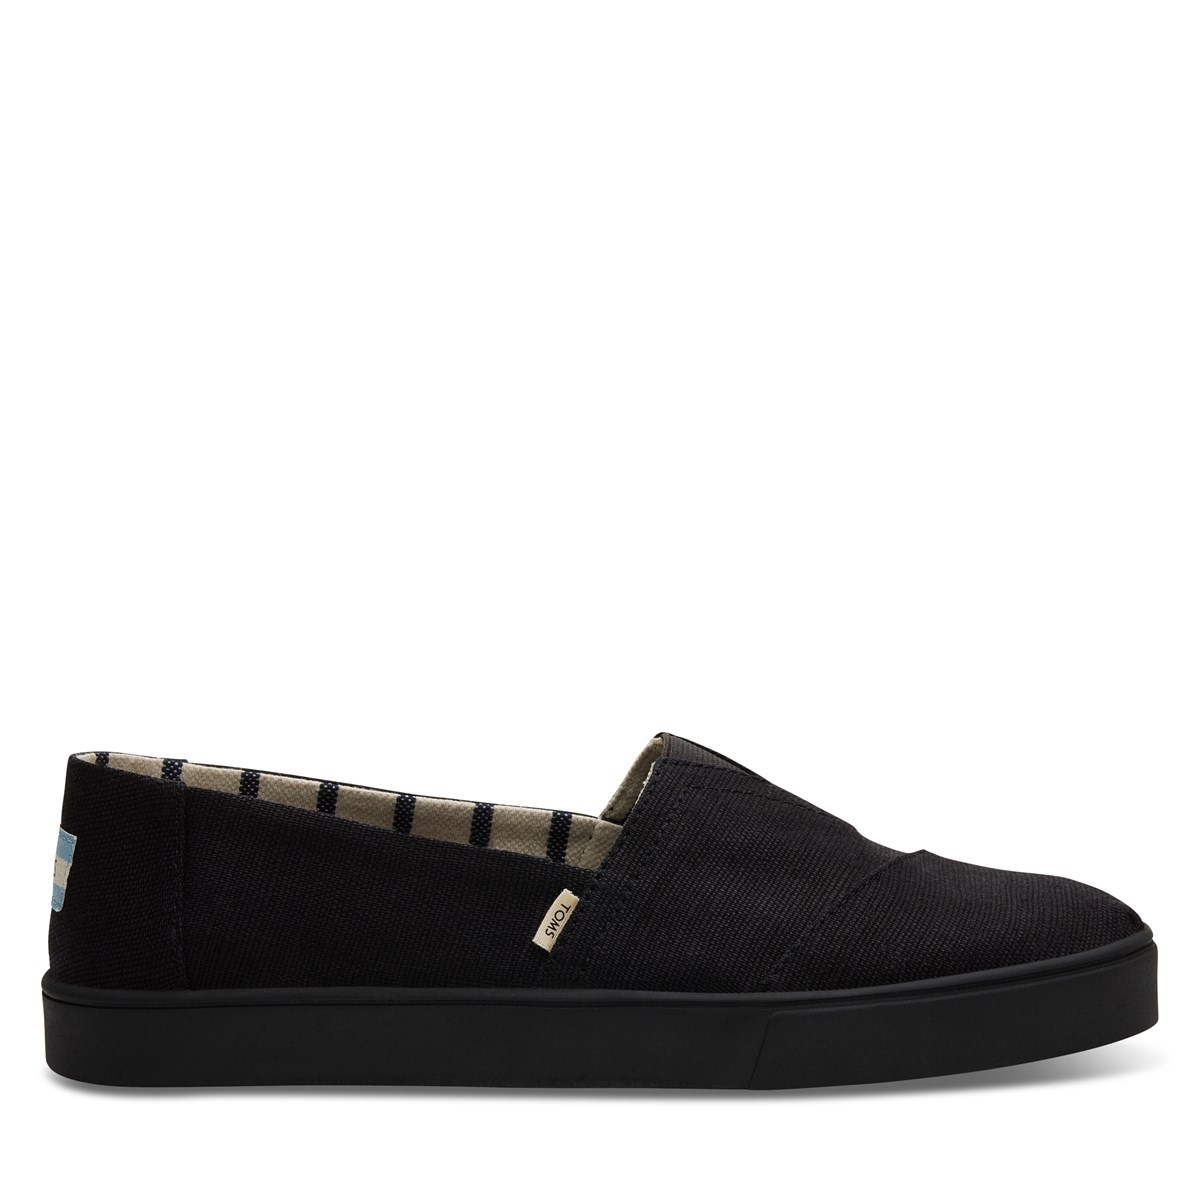 Men's Alpargata Cupsole Slip-Ons in black